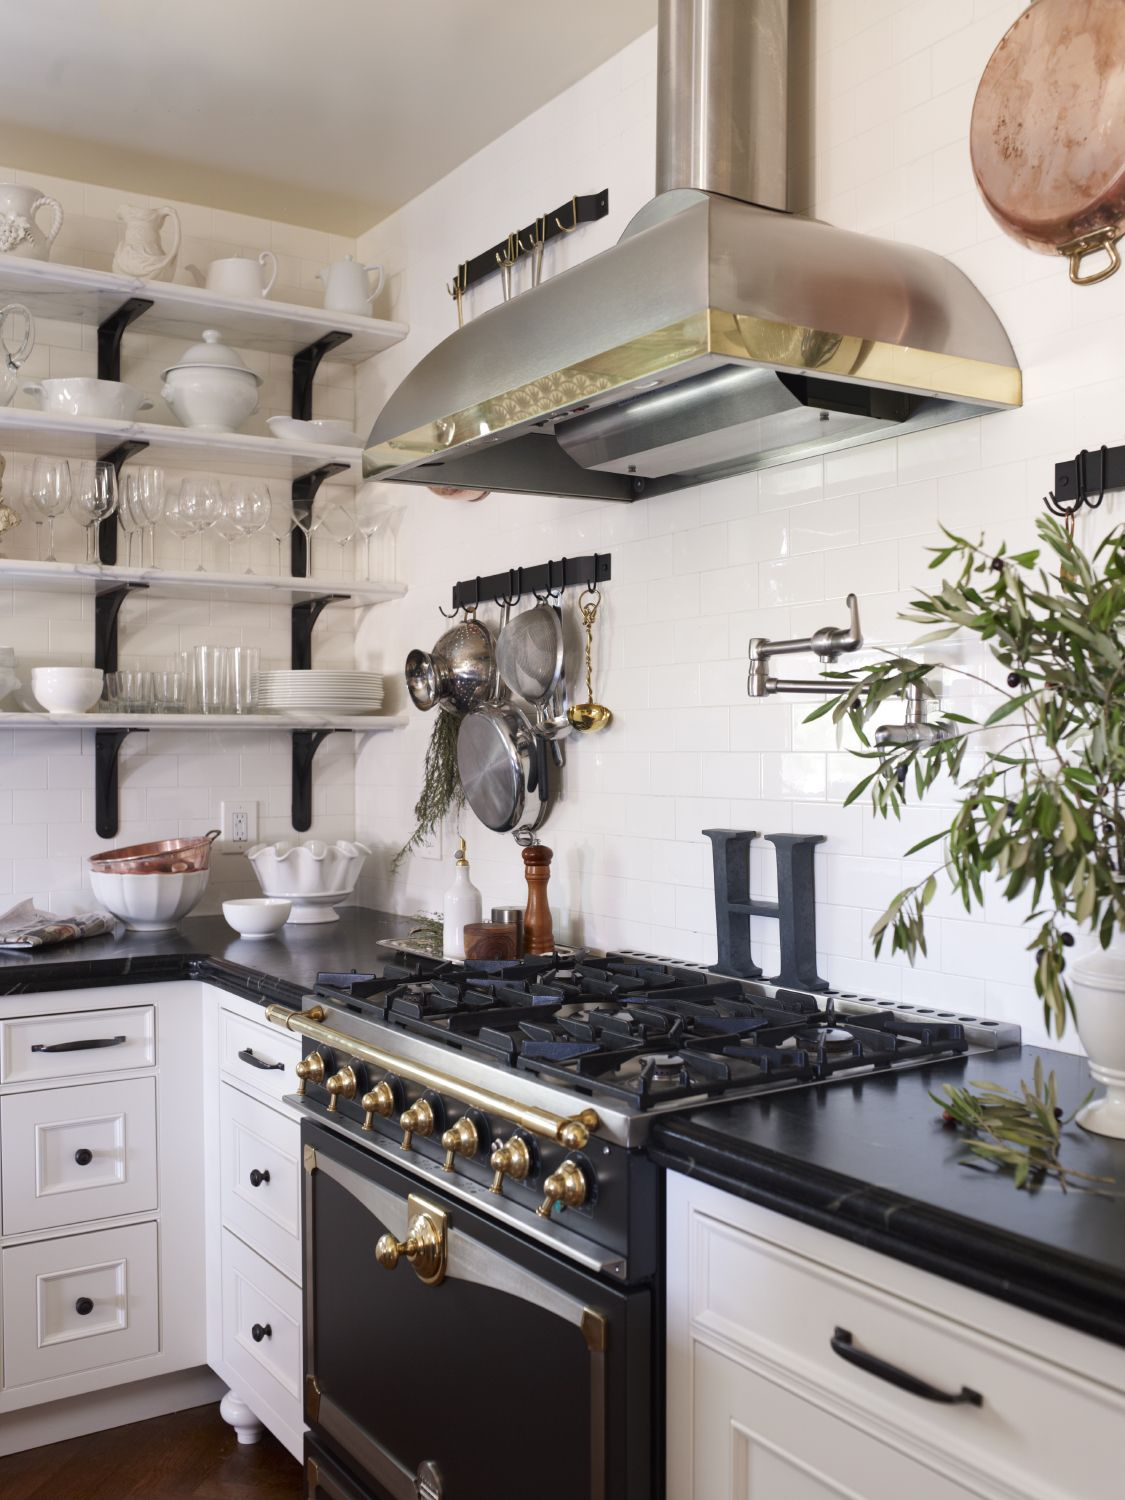 View Of Le Cornue Range And Cooktop Cultivate Com